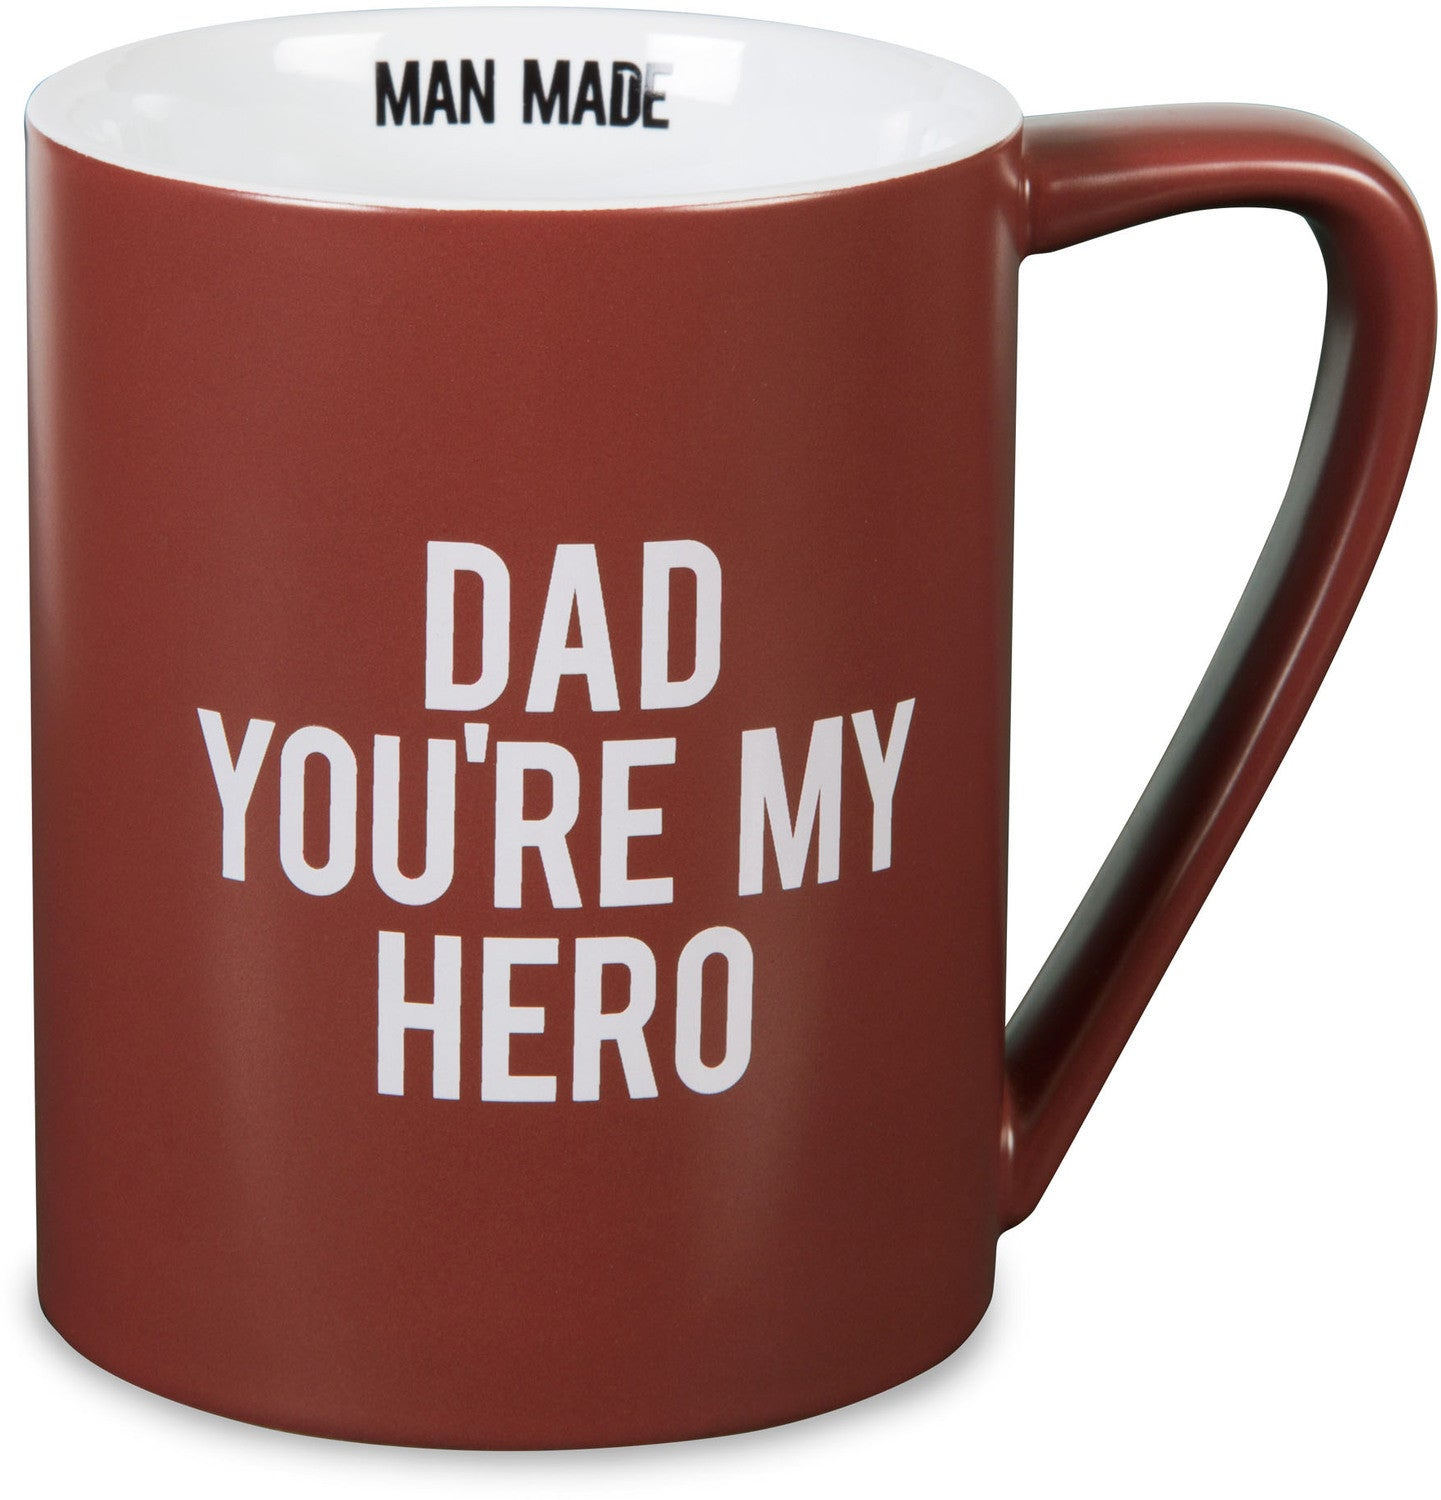 Dad You're My Hero (Man Made Collection) by Pavilion Gifts